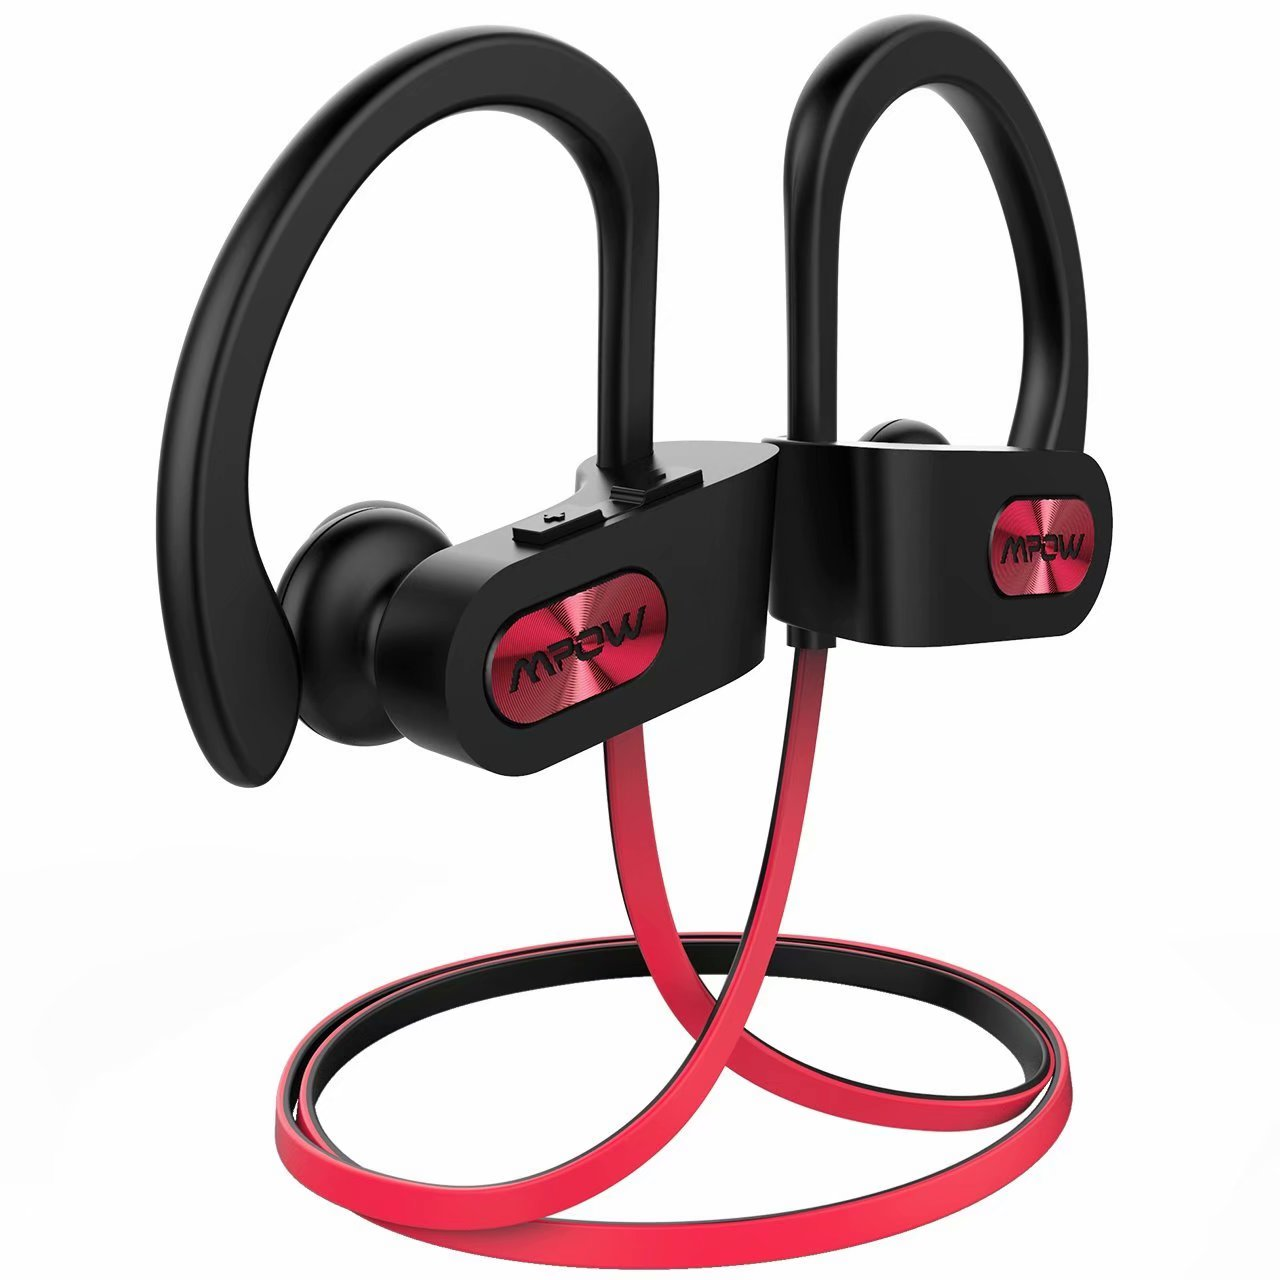 Mpow Bluetooth Headphones, IPX7 Waterproof In-ear Earbuds, Wireless Sports Earphones for Gym Running Cycling Workout (Red Outside & Black Inside)